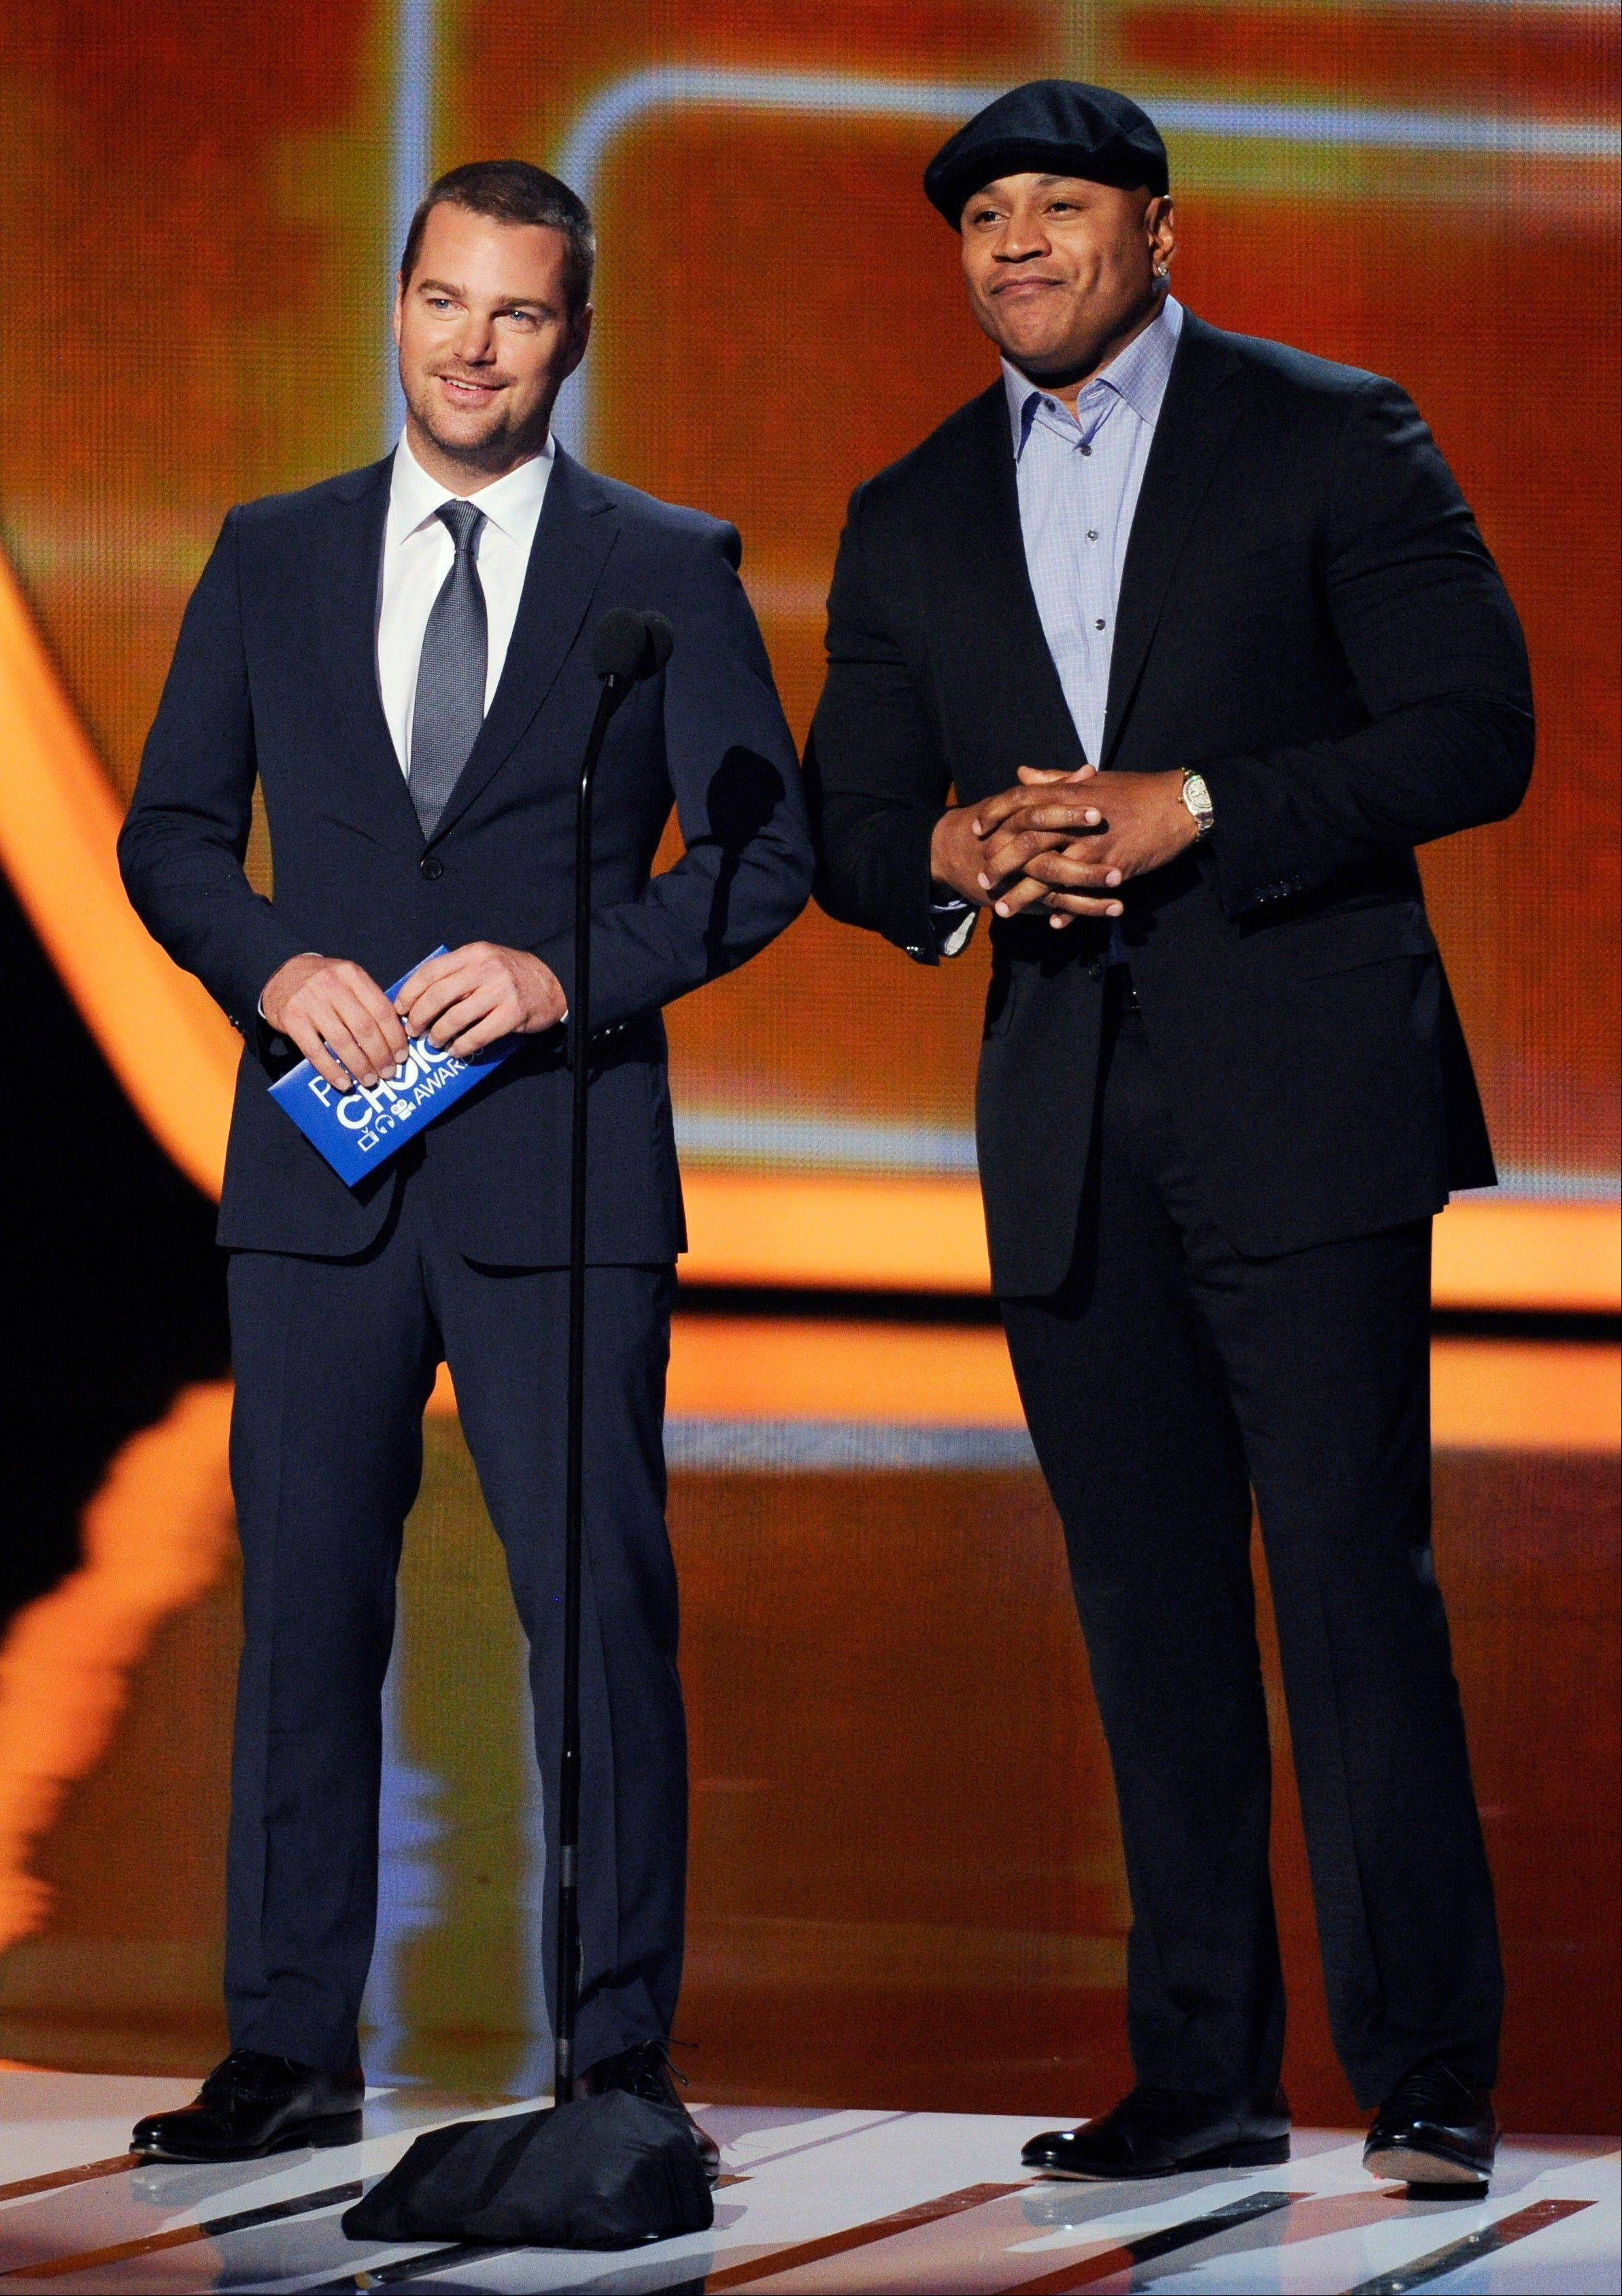 Associated PressChris O'Donnell, left, and LL Cool J present the award for favorite comedic TV actress at the 40th annual People's Choice Awards Wednesday in Los Angeles.